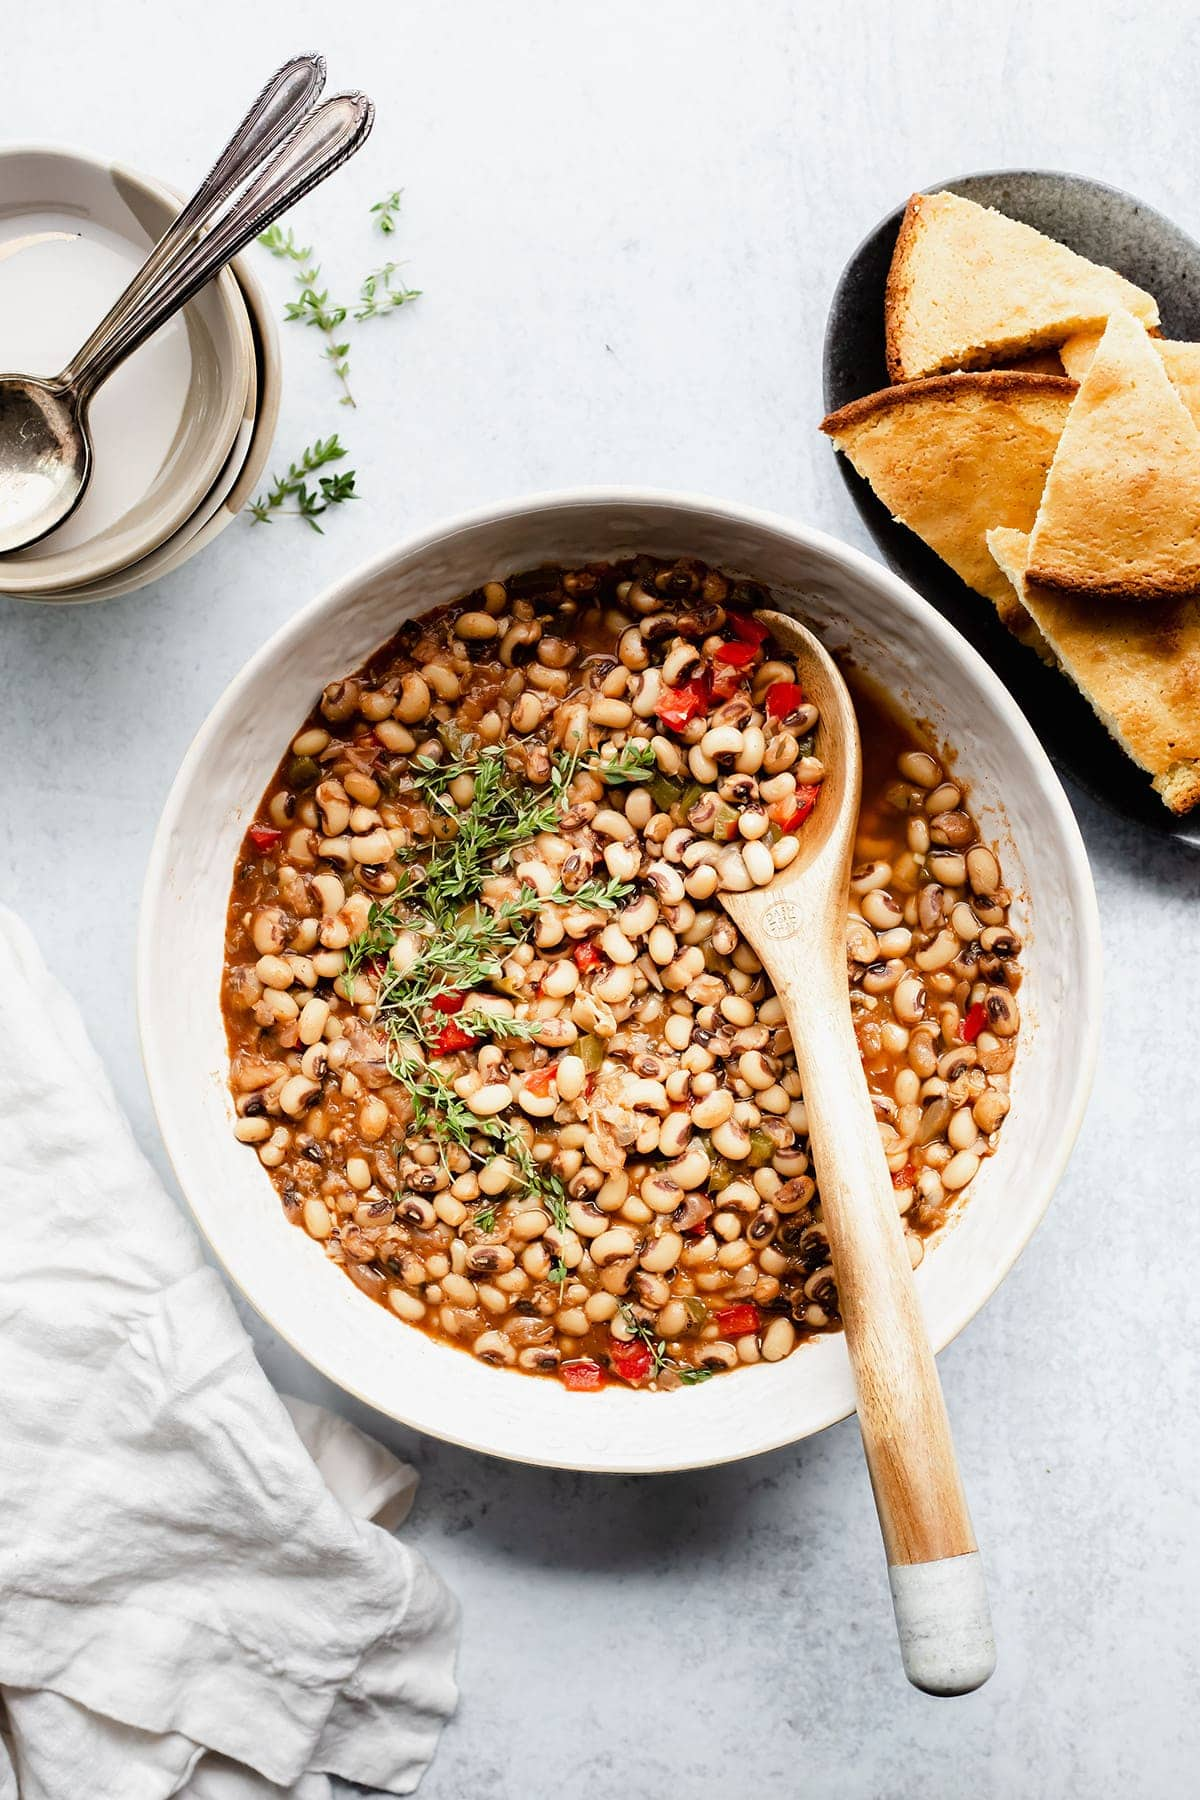 Overlay southern-style black-eyed peas with a wooden spoon, garnished with thyme in a white bowl with cornbread on a white background